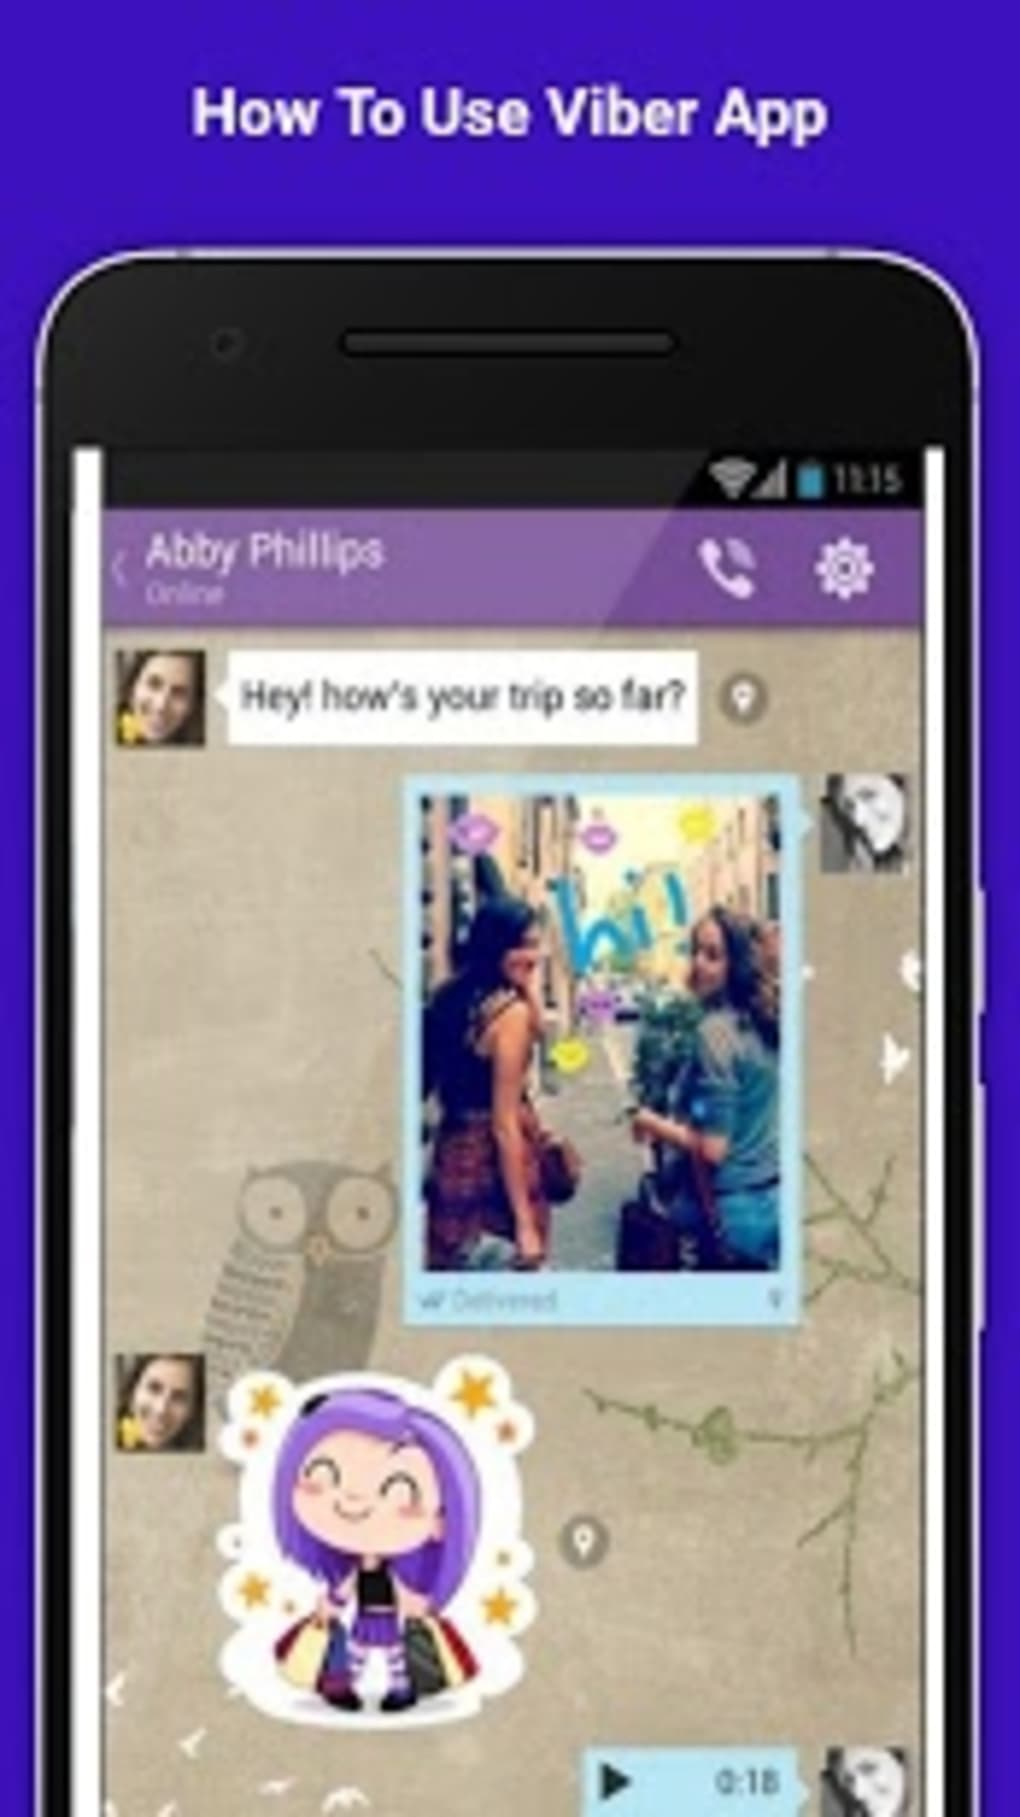 Free Viber Video Call Guide for Android - Download